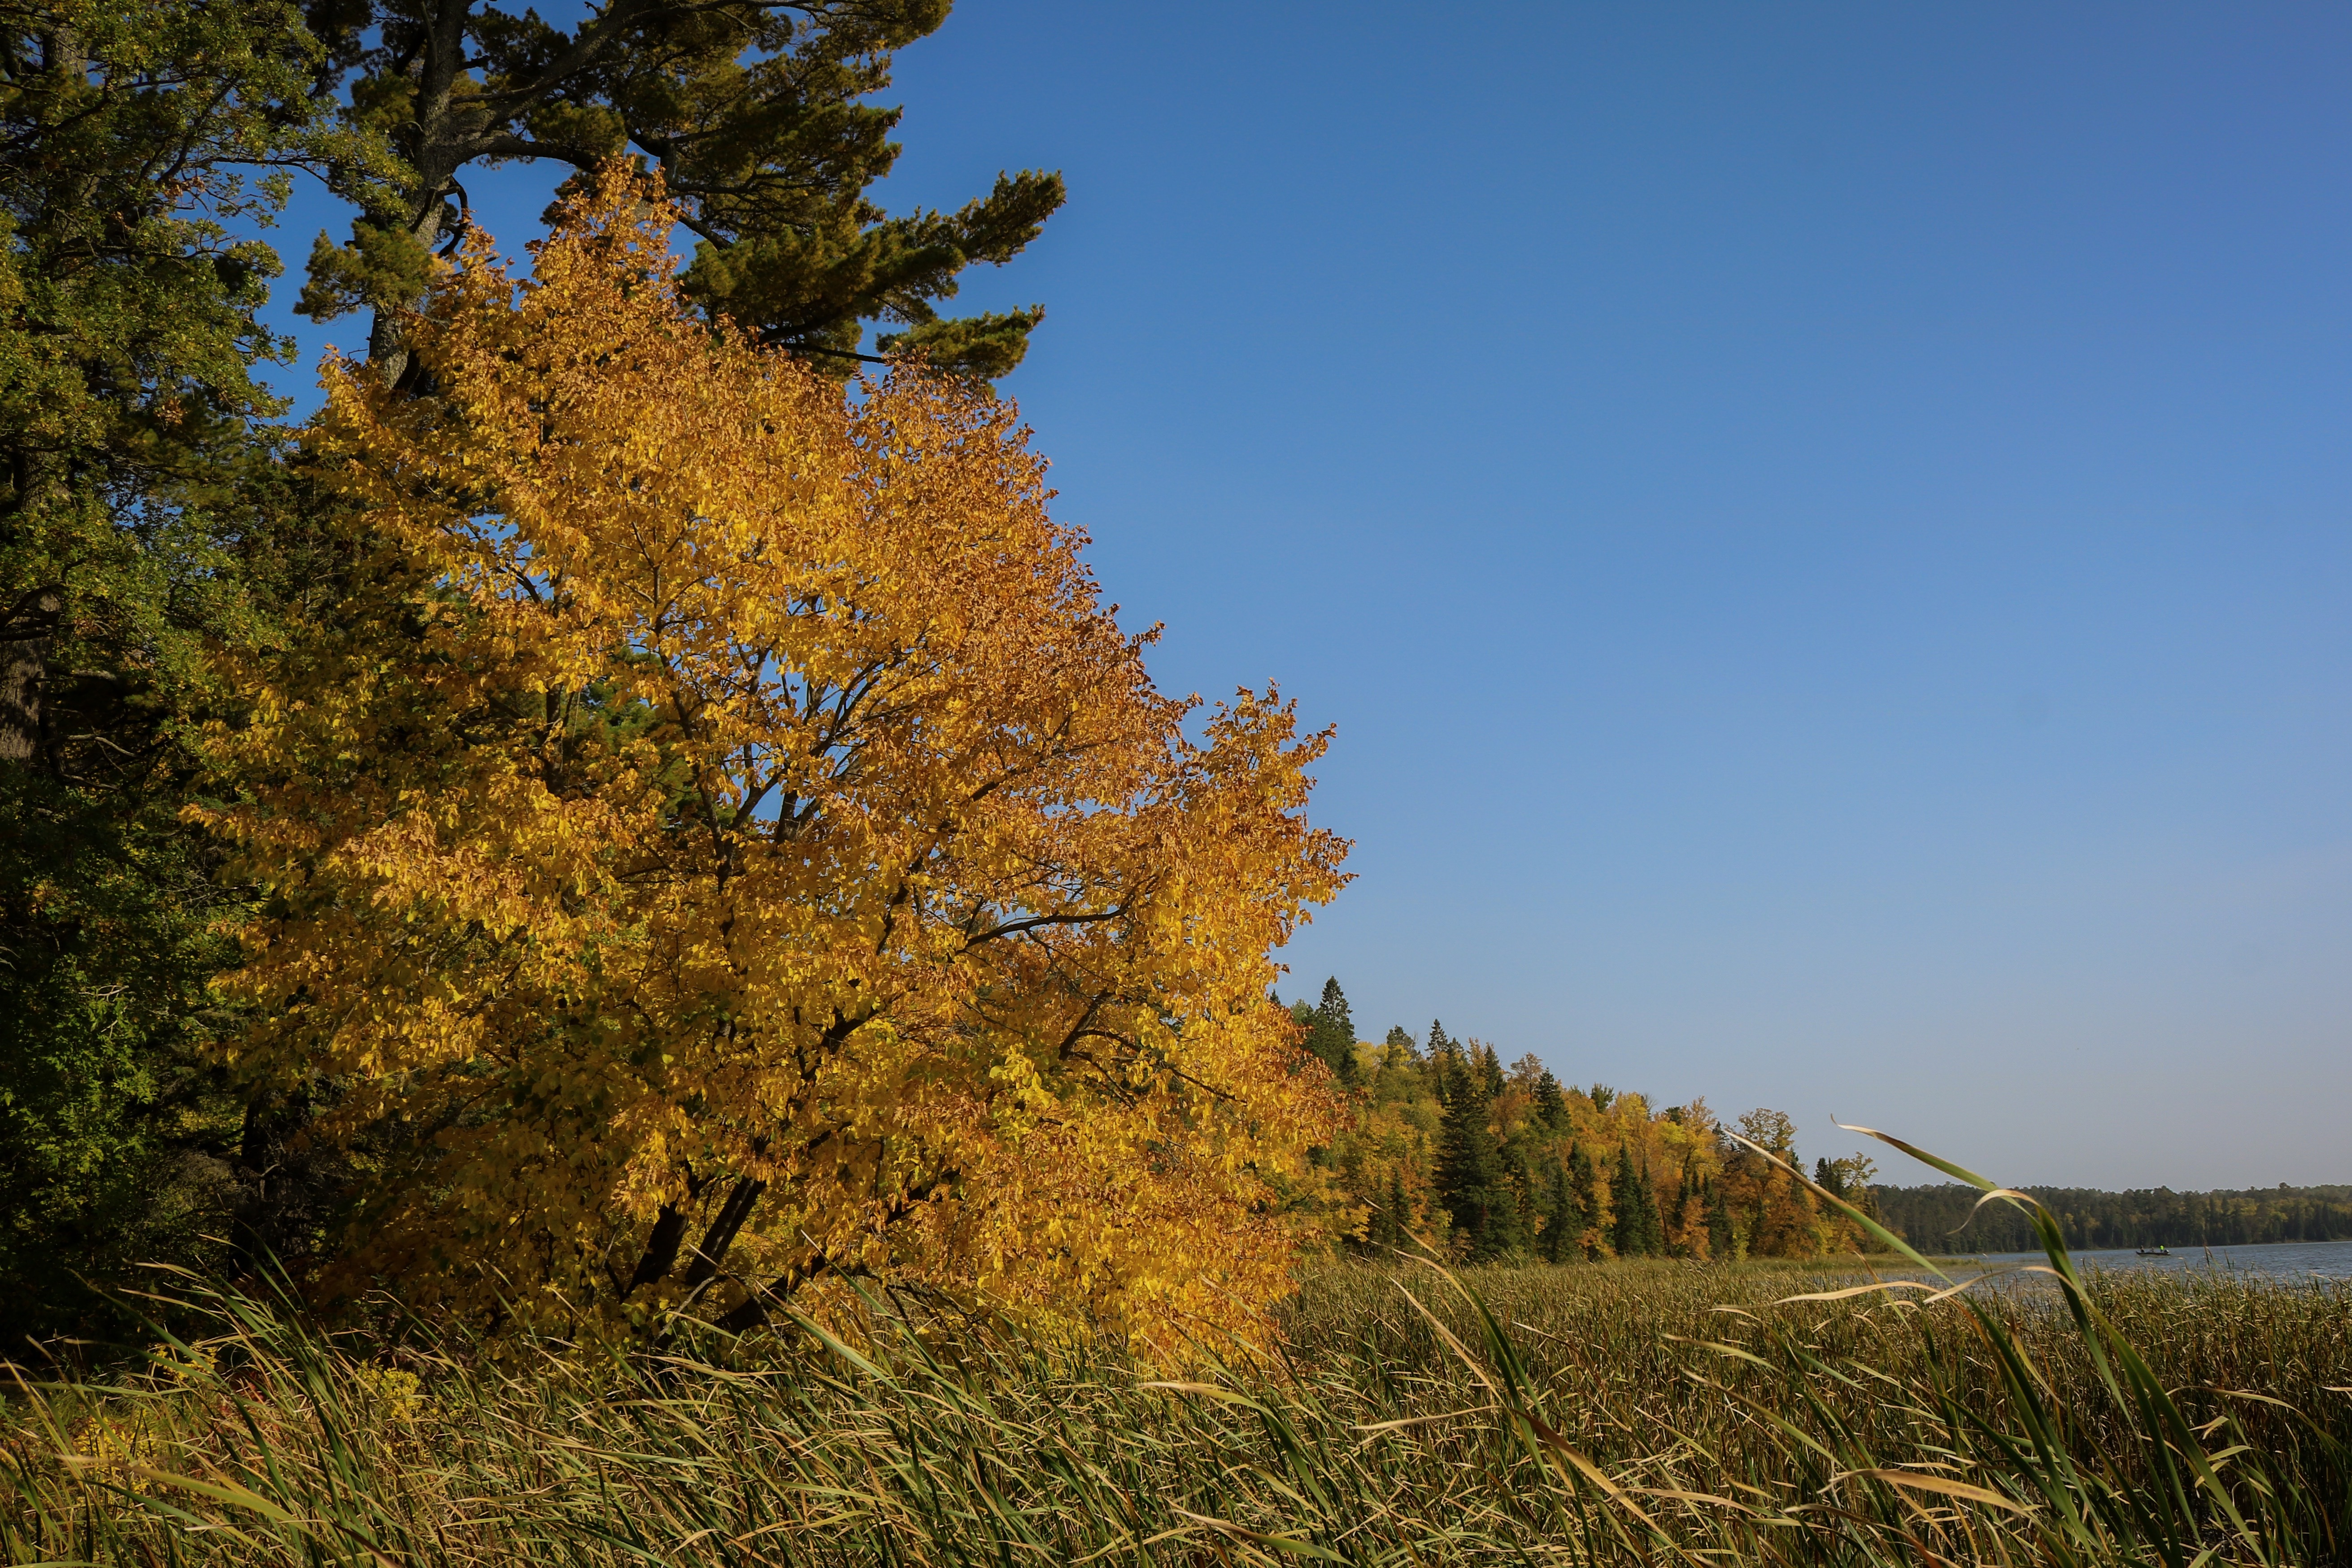 Trees with bright orange and yellow trees line the shore of Elk Lake at Itasca State Park.